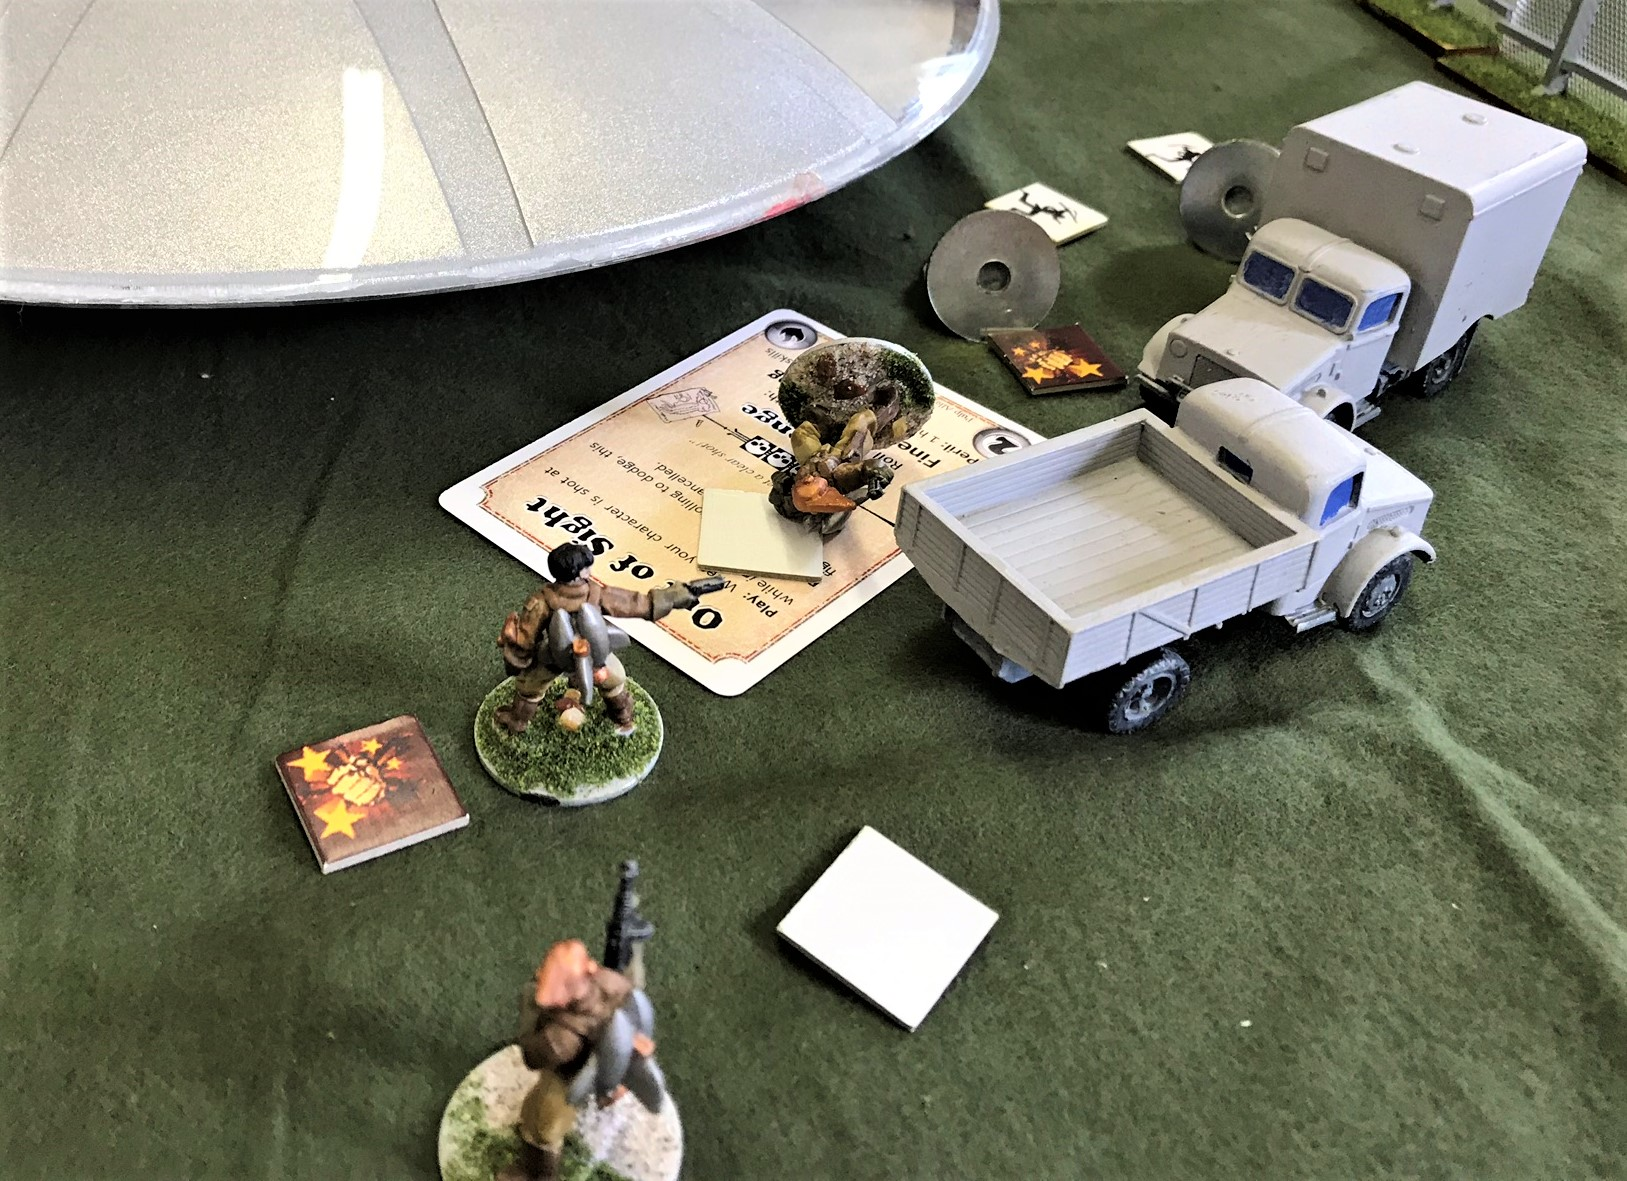 9a moving towards the Nazi Zombies and their objectives